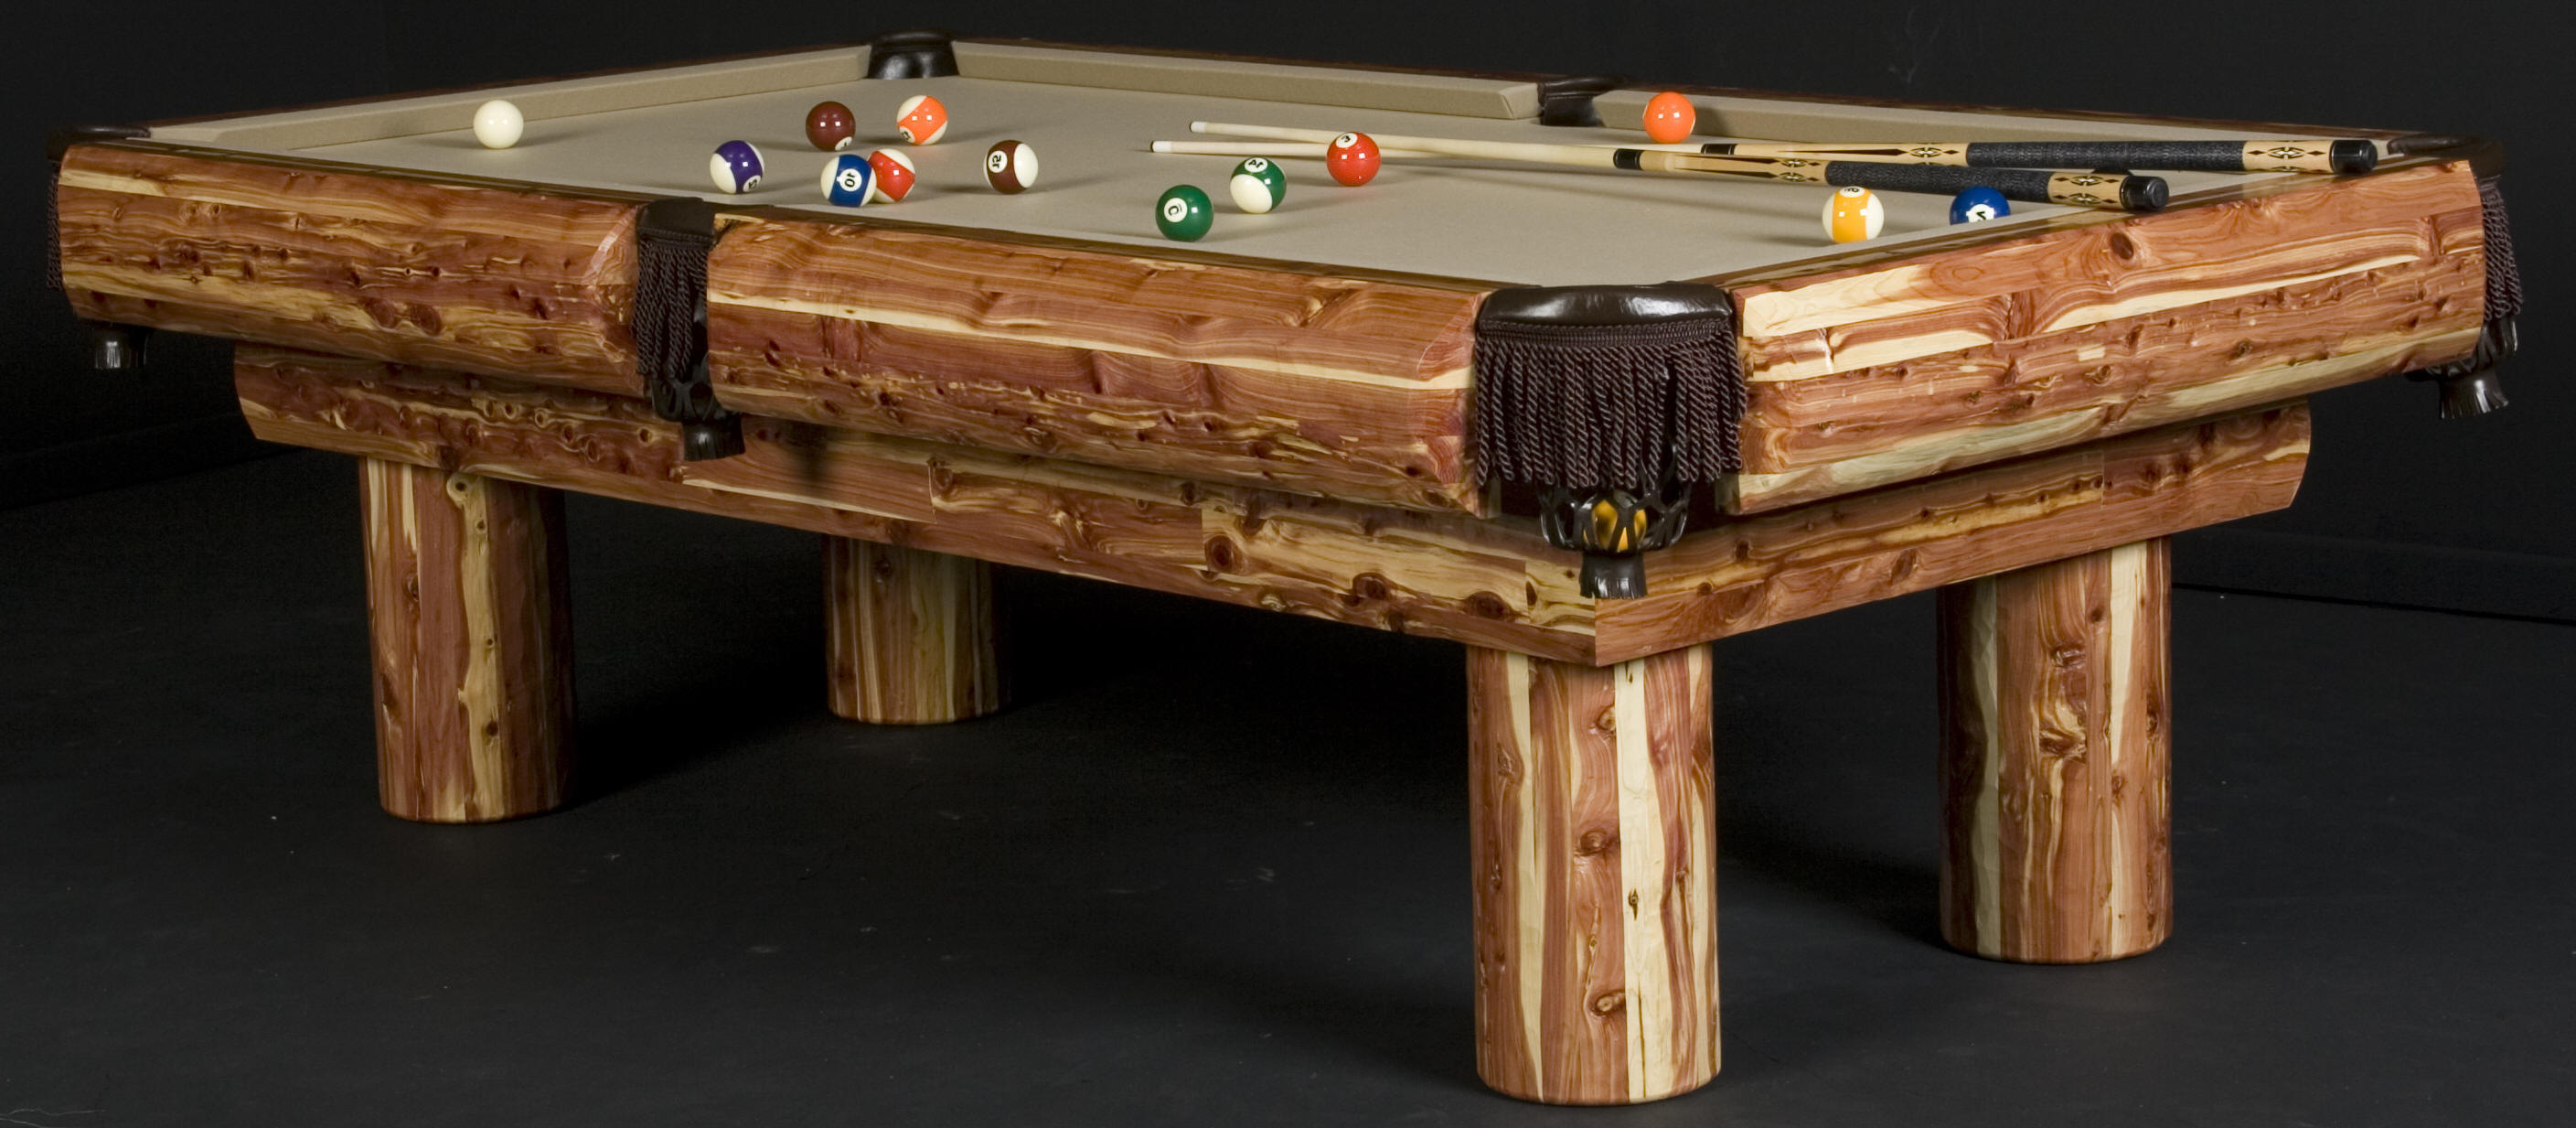 Wonderful Unique Pool Table Design HomesFeed